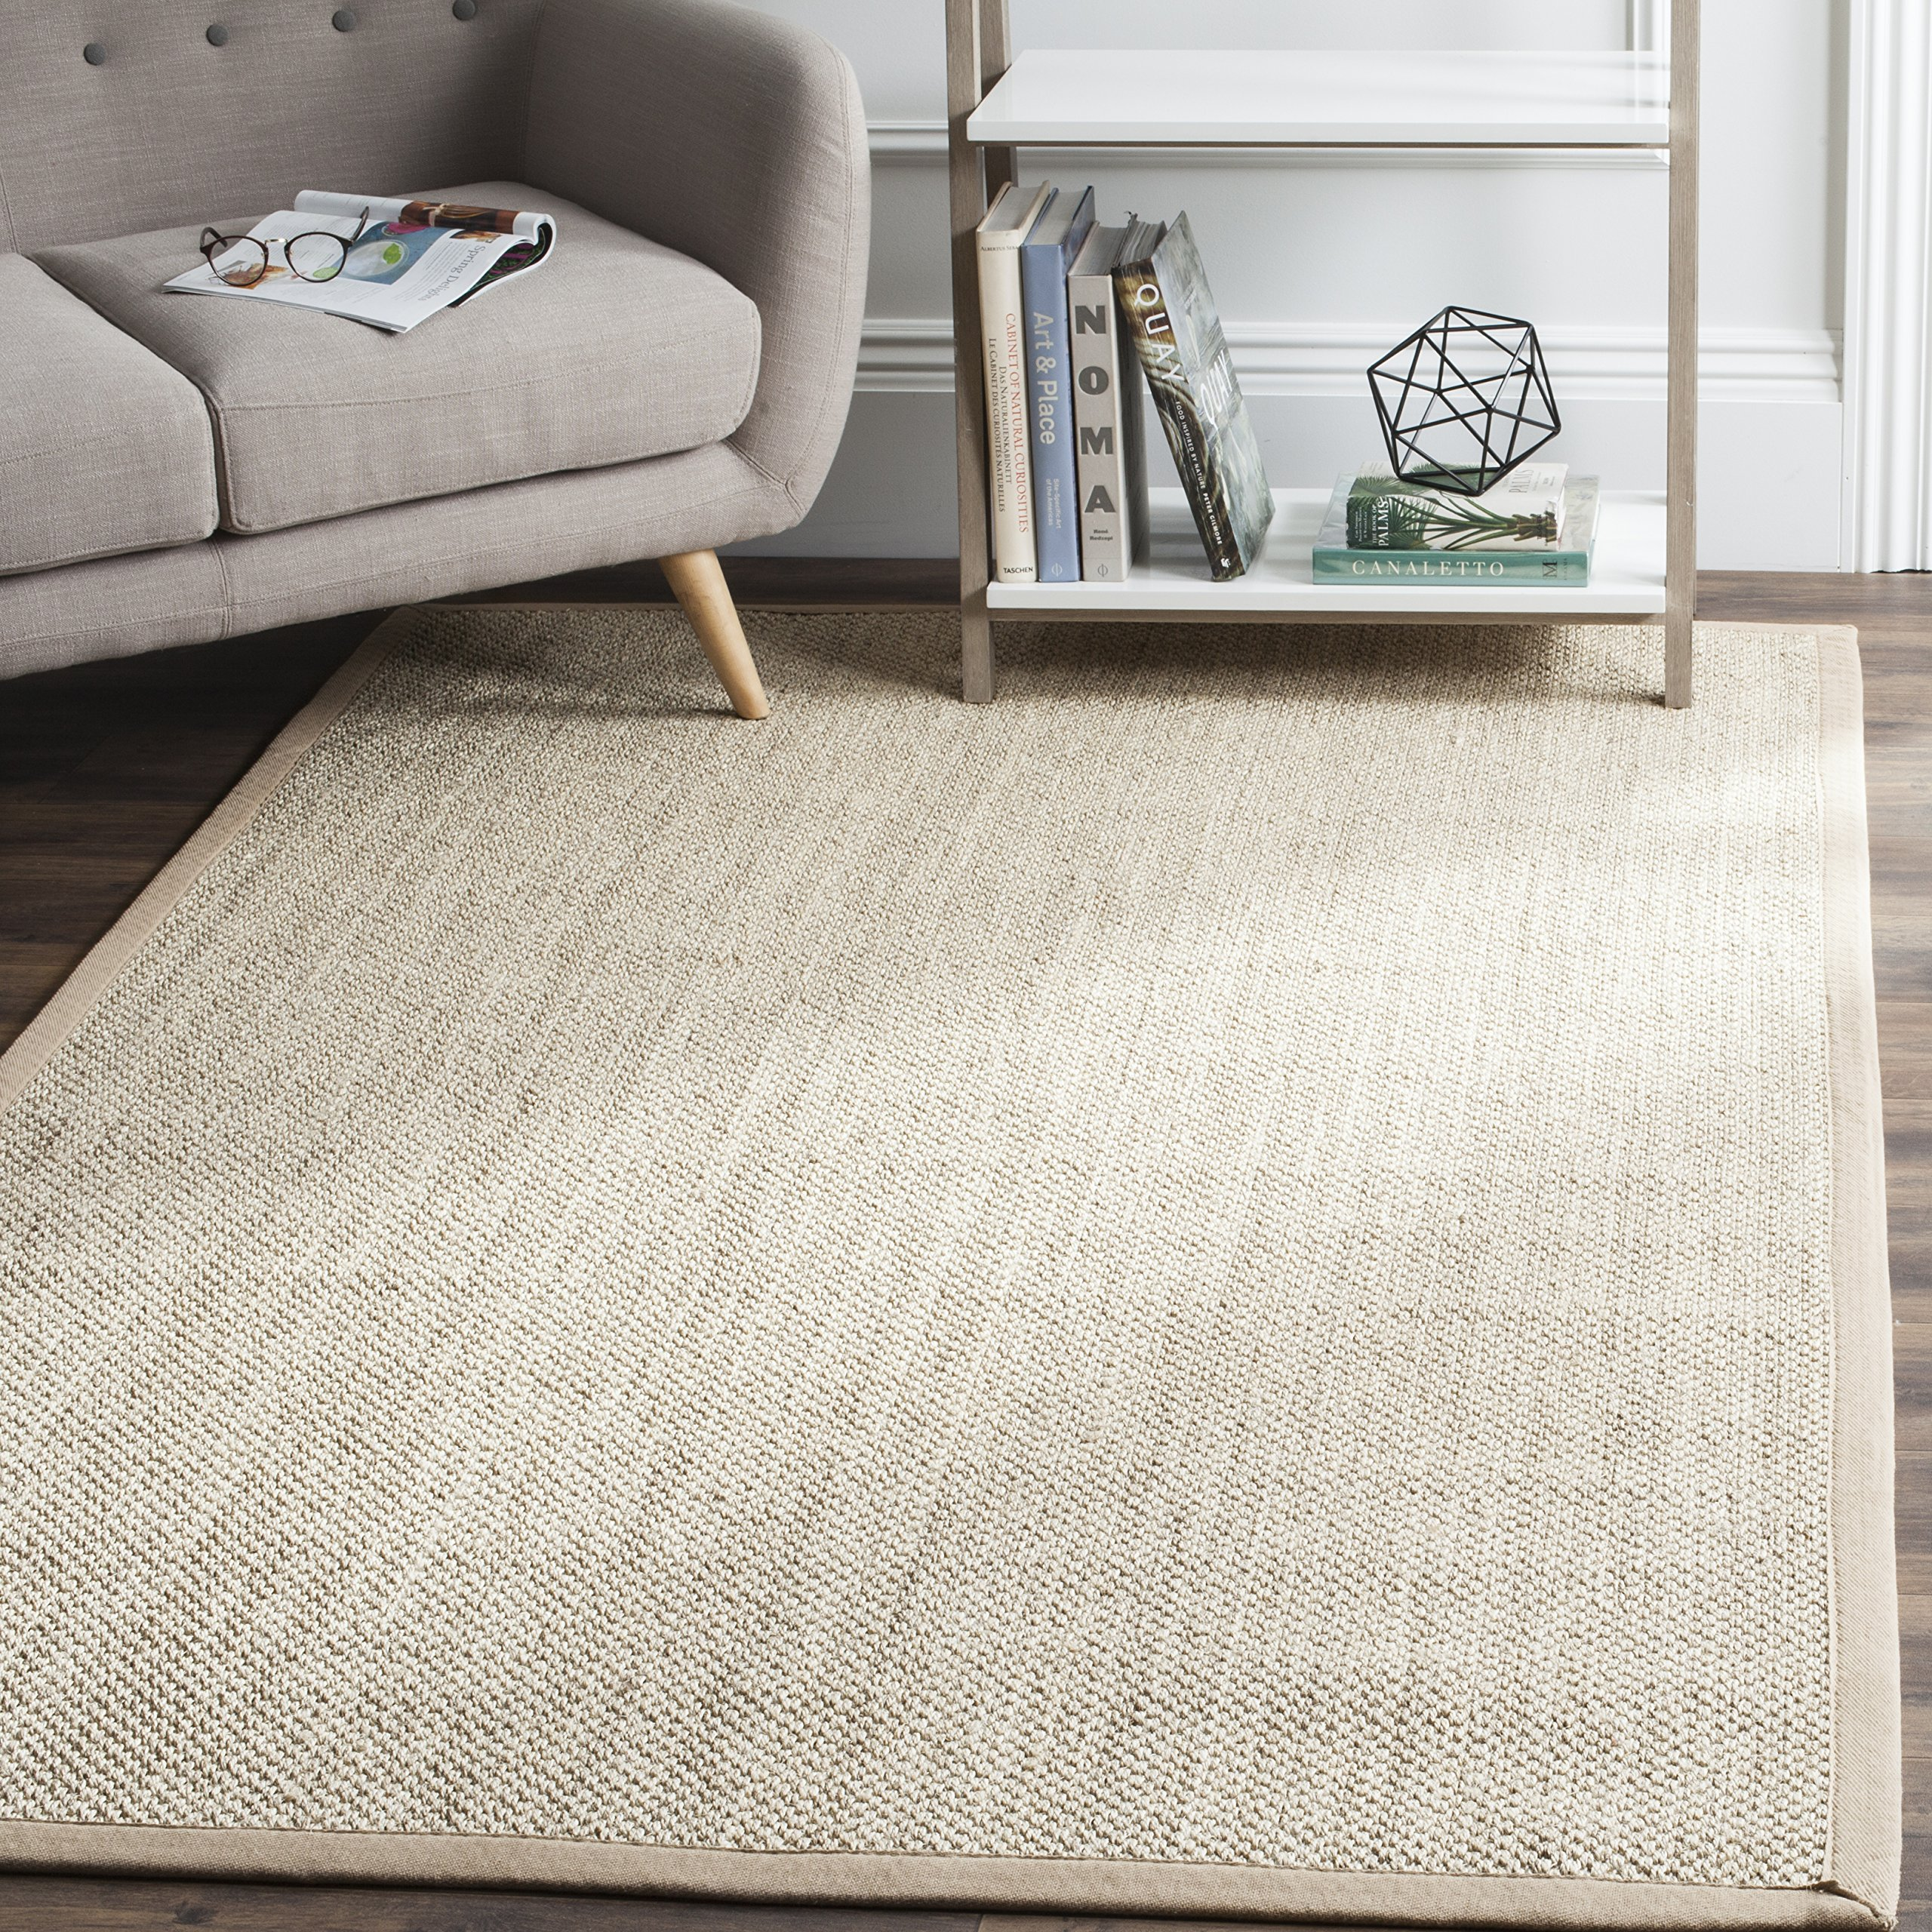 Safavieh Natural Fiber Collection NF143B Marble and Linen Sisal Area Rug (8' x 10') by Safavieh